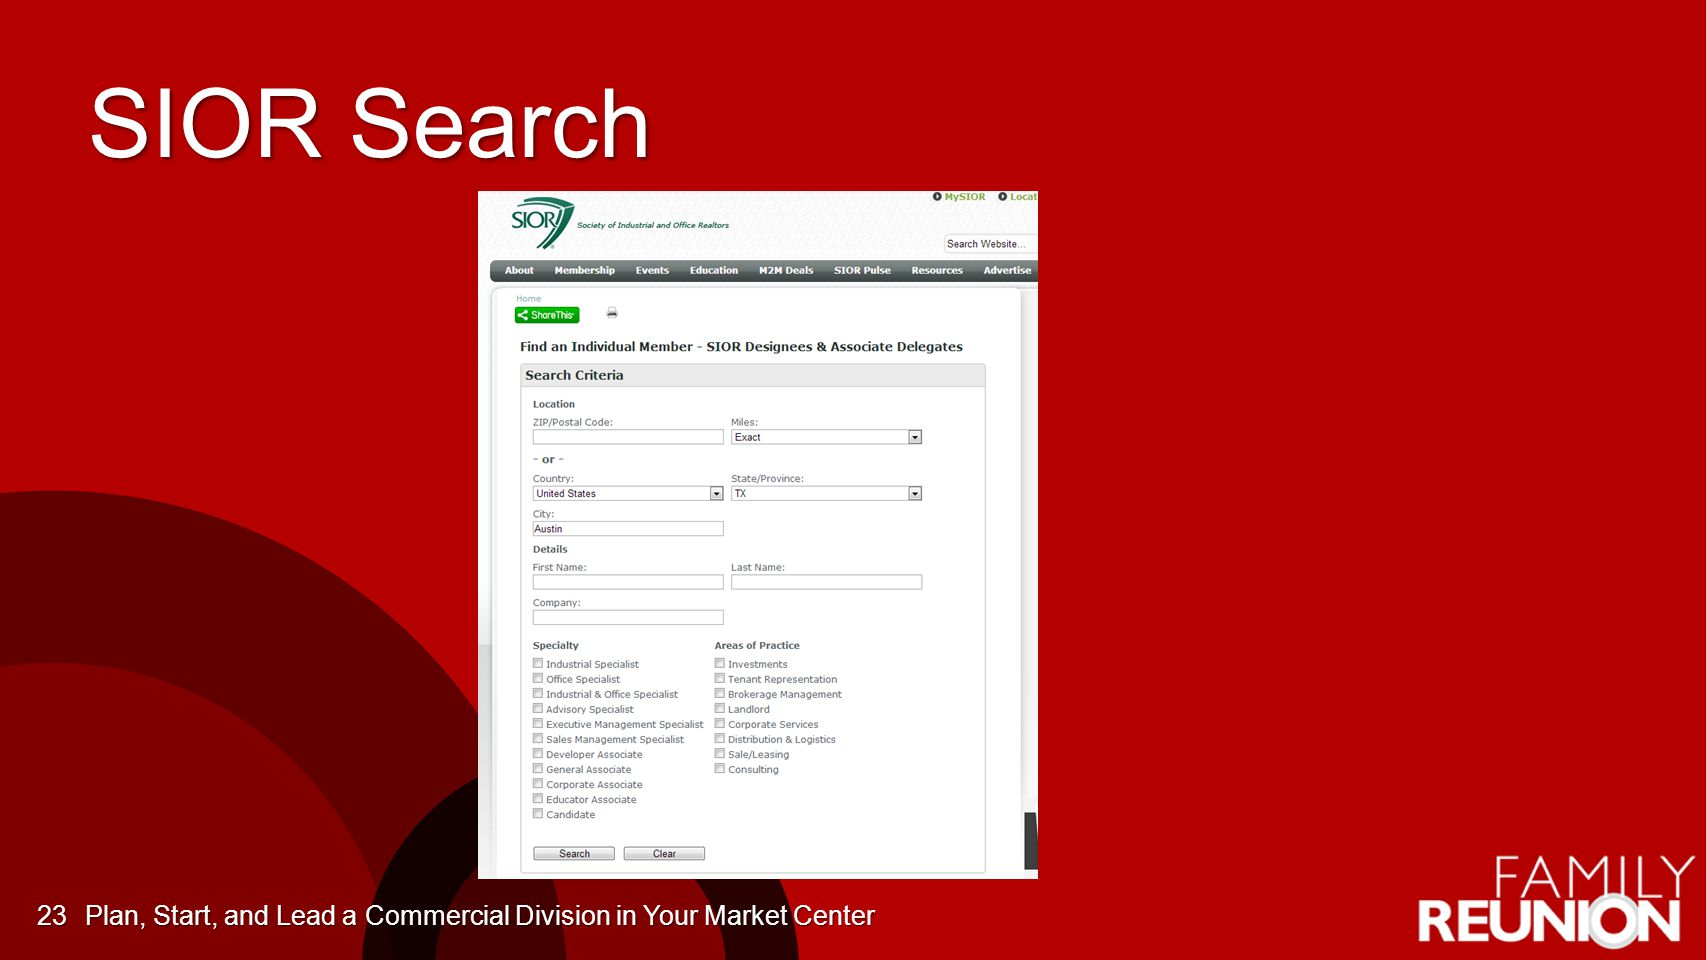 SIOR Search Plan, Start, and Lead a Commercial Division in Your Market Center23